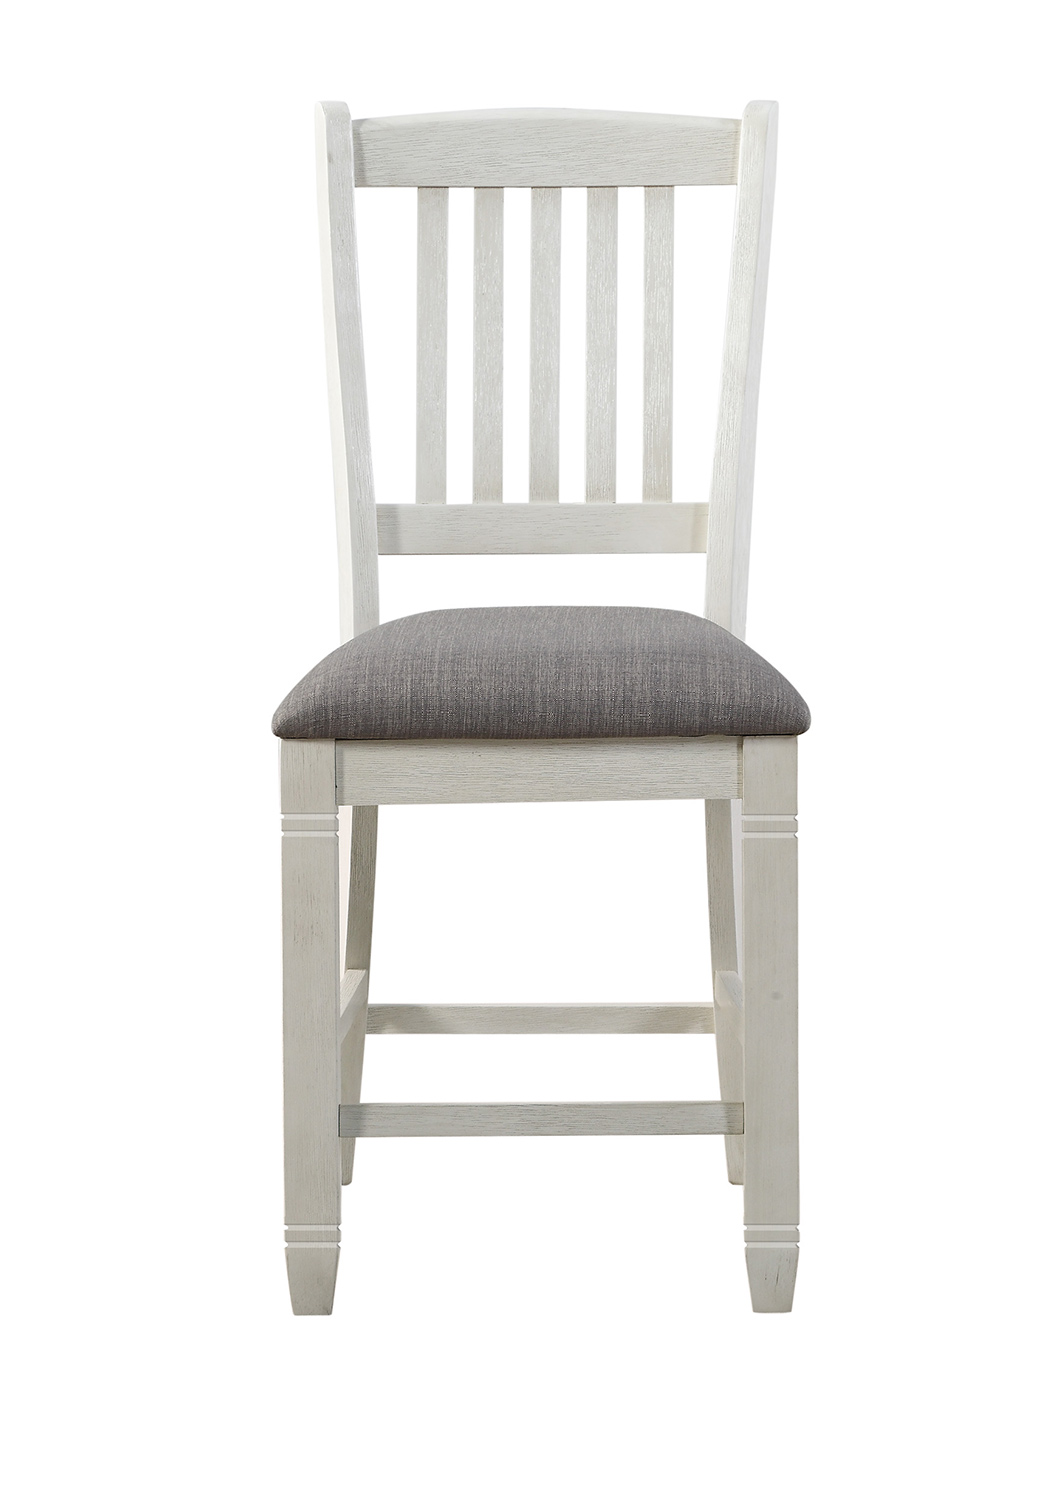 Homelegance Granby Counter Height Chair - Antique White - Rosy Brown